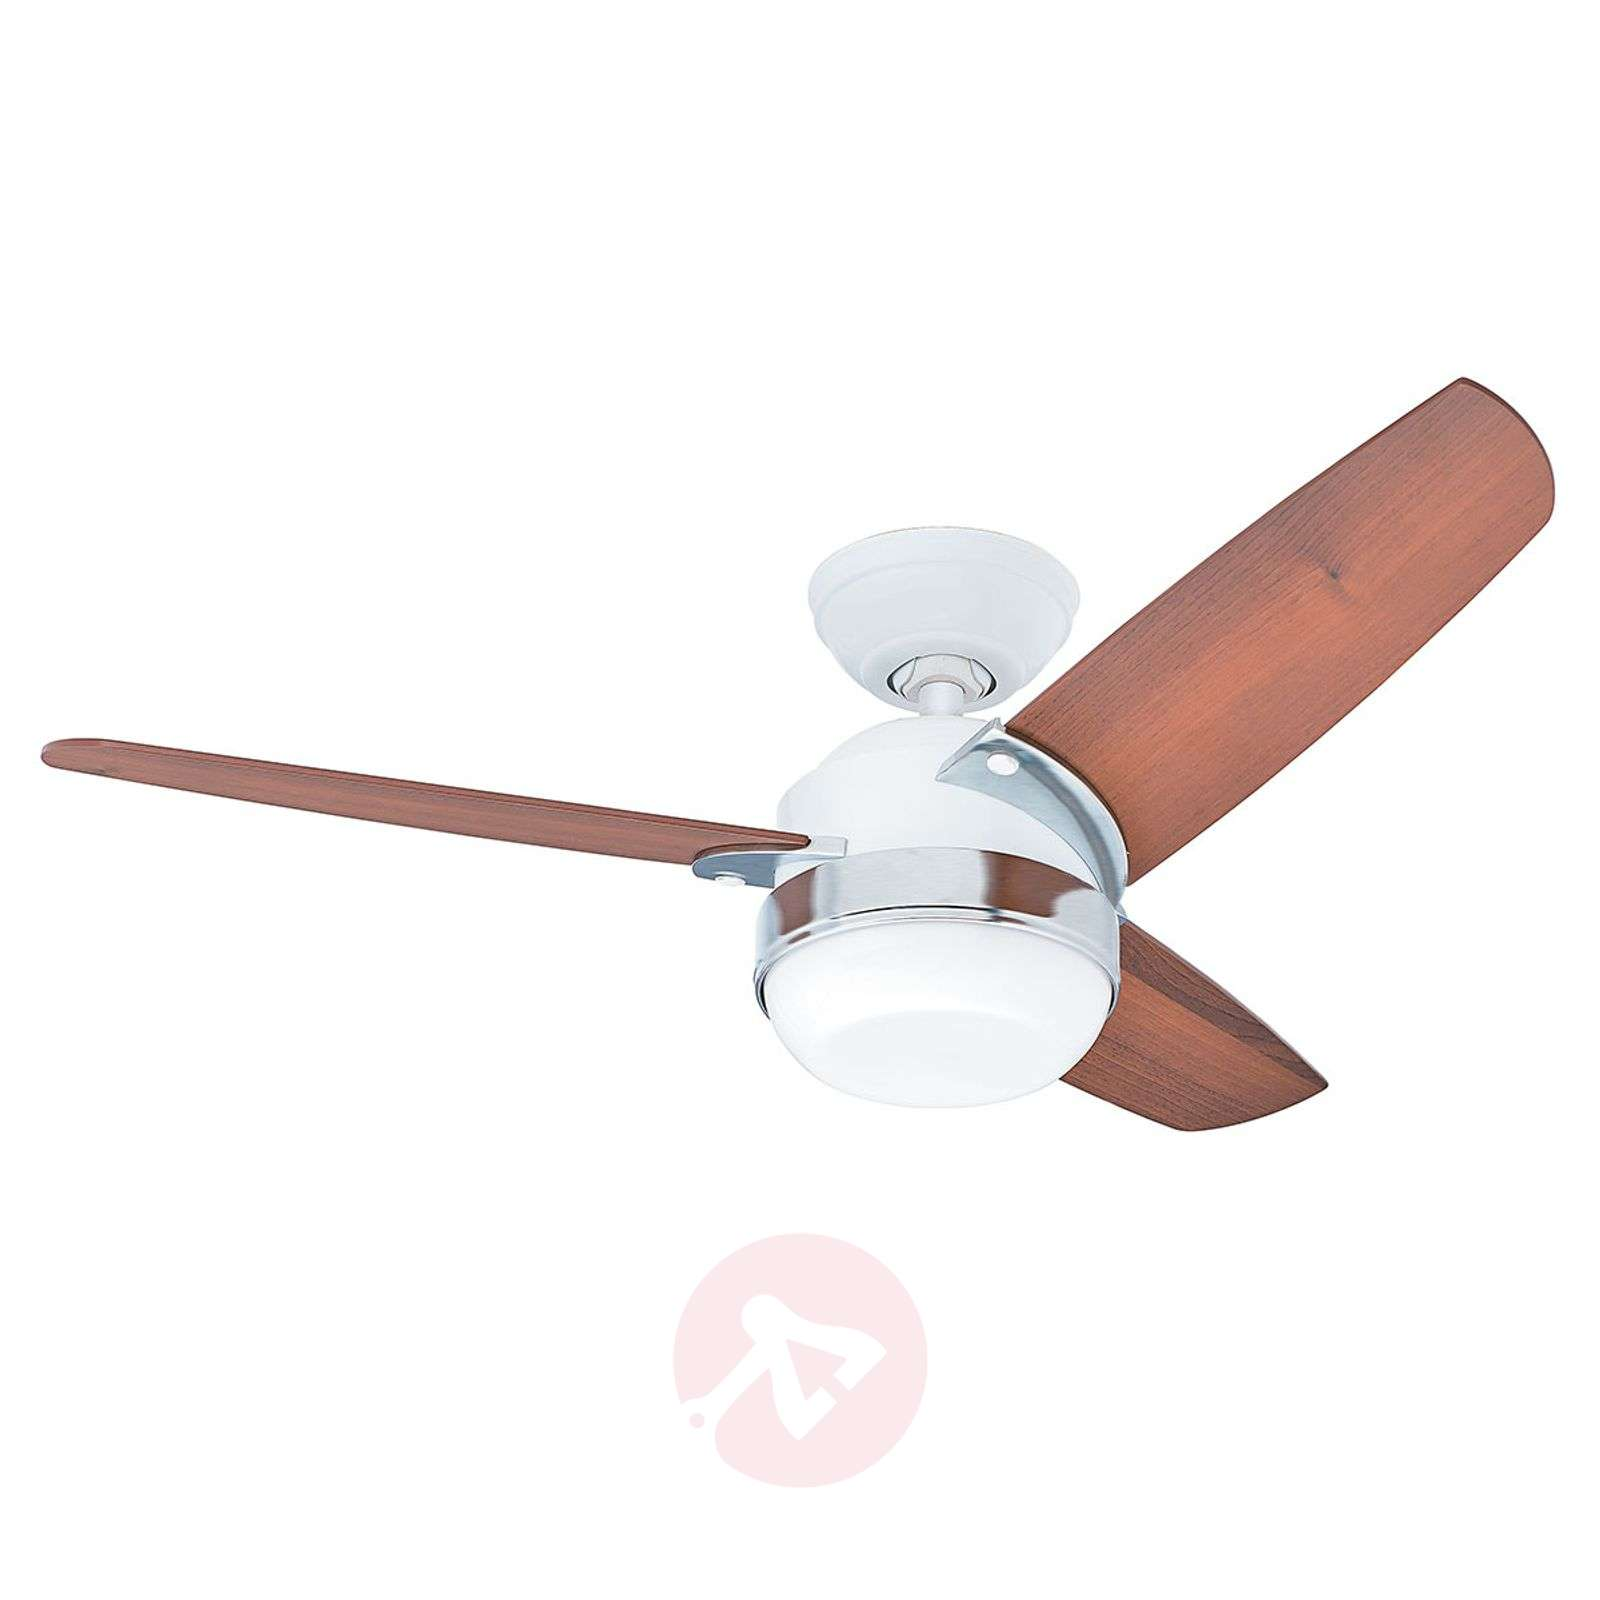 Hunter Nova ventilateur éclairage, noyer-4545053-01